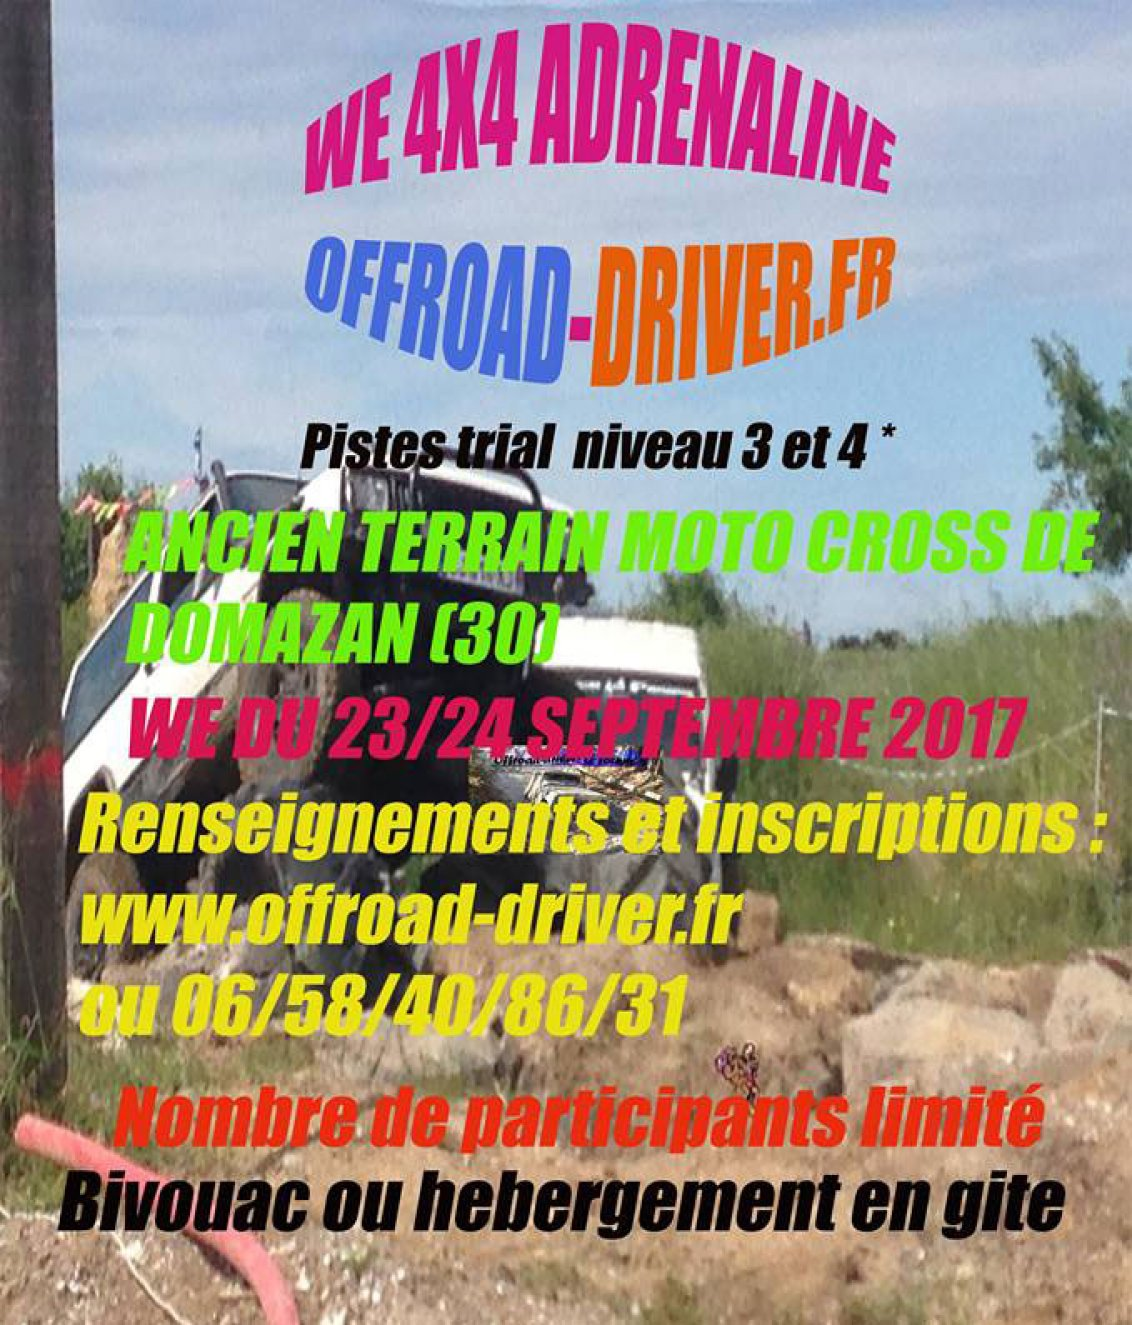 Week-end 4x4 Adrenaline d'Offroad-Driver